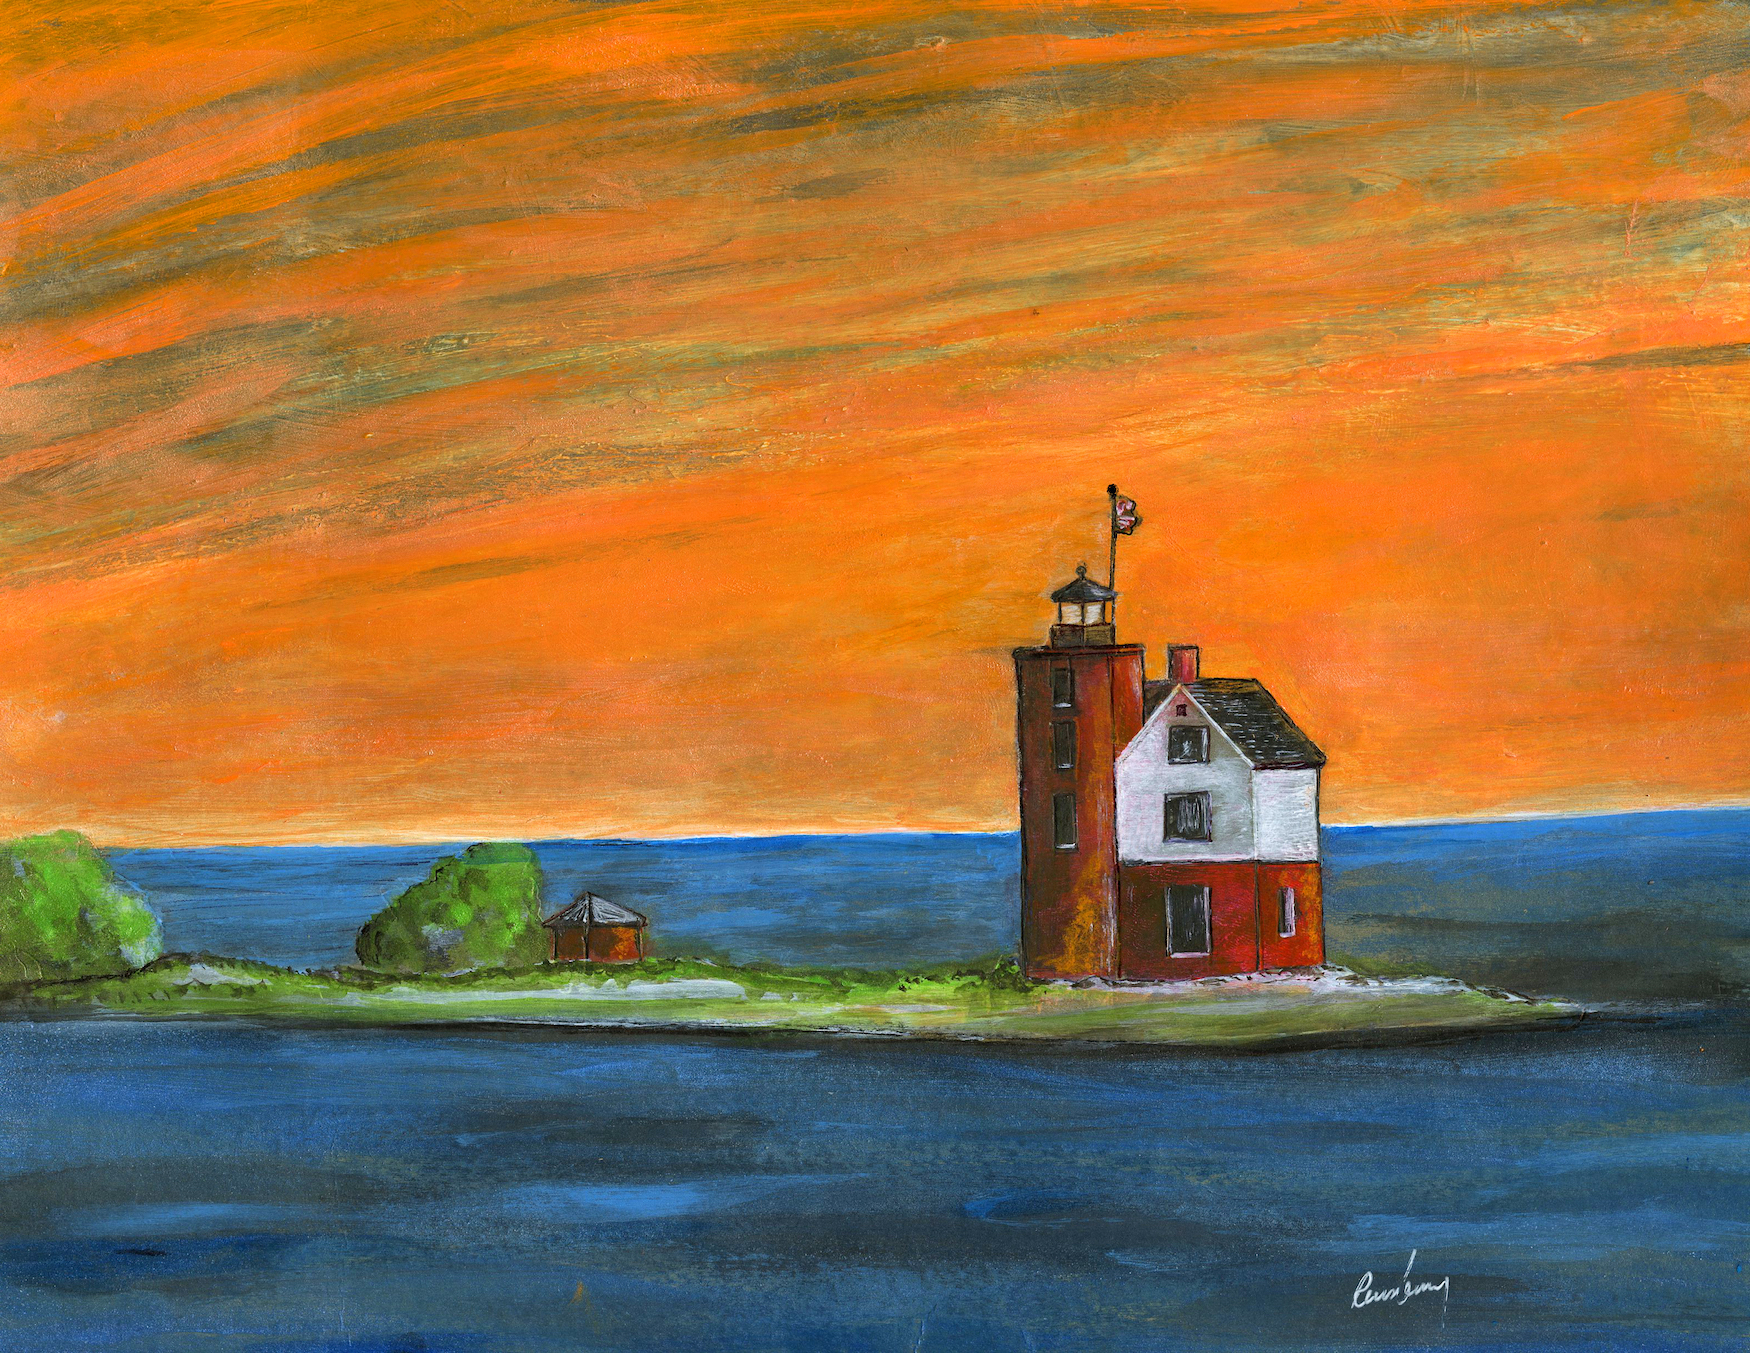 Round Island Lighthouse Art Print is a painting by Michigan artist Richard Rensberry with the flag flying at sunset.